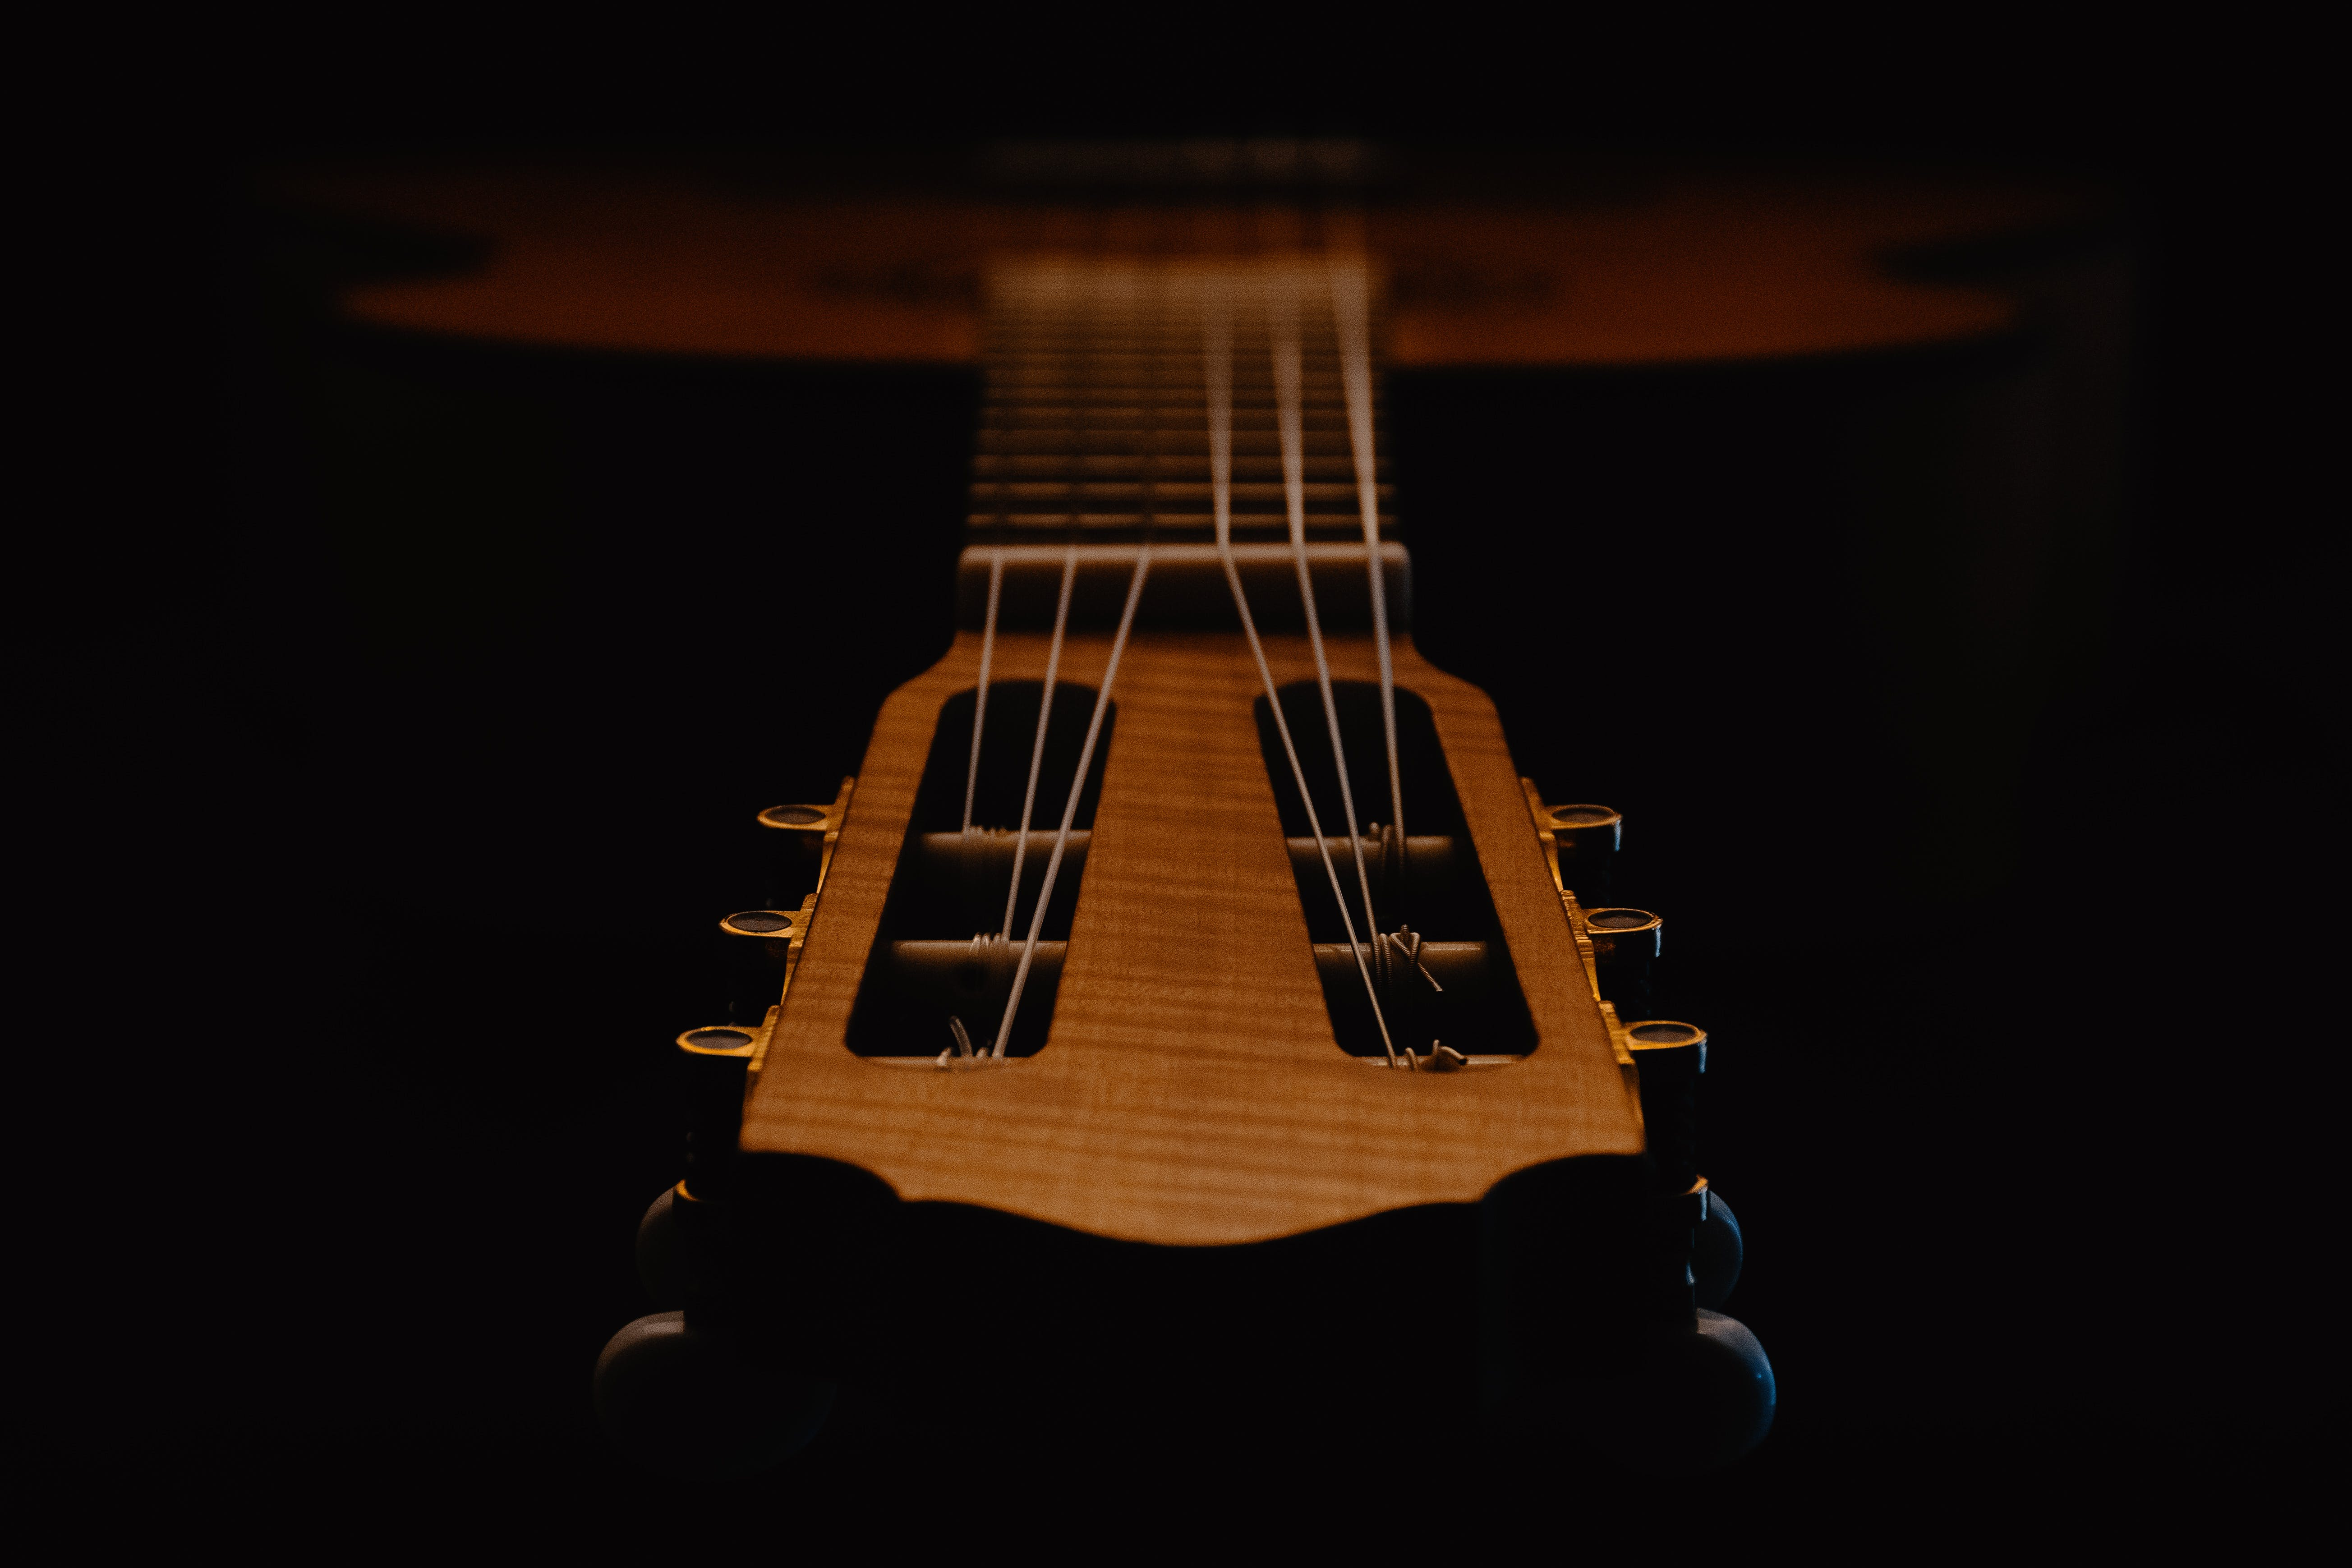 Selective Focus Photograph of Guitar Headstock